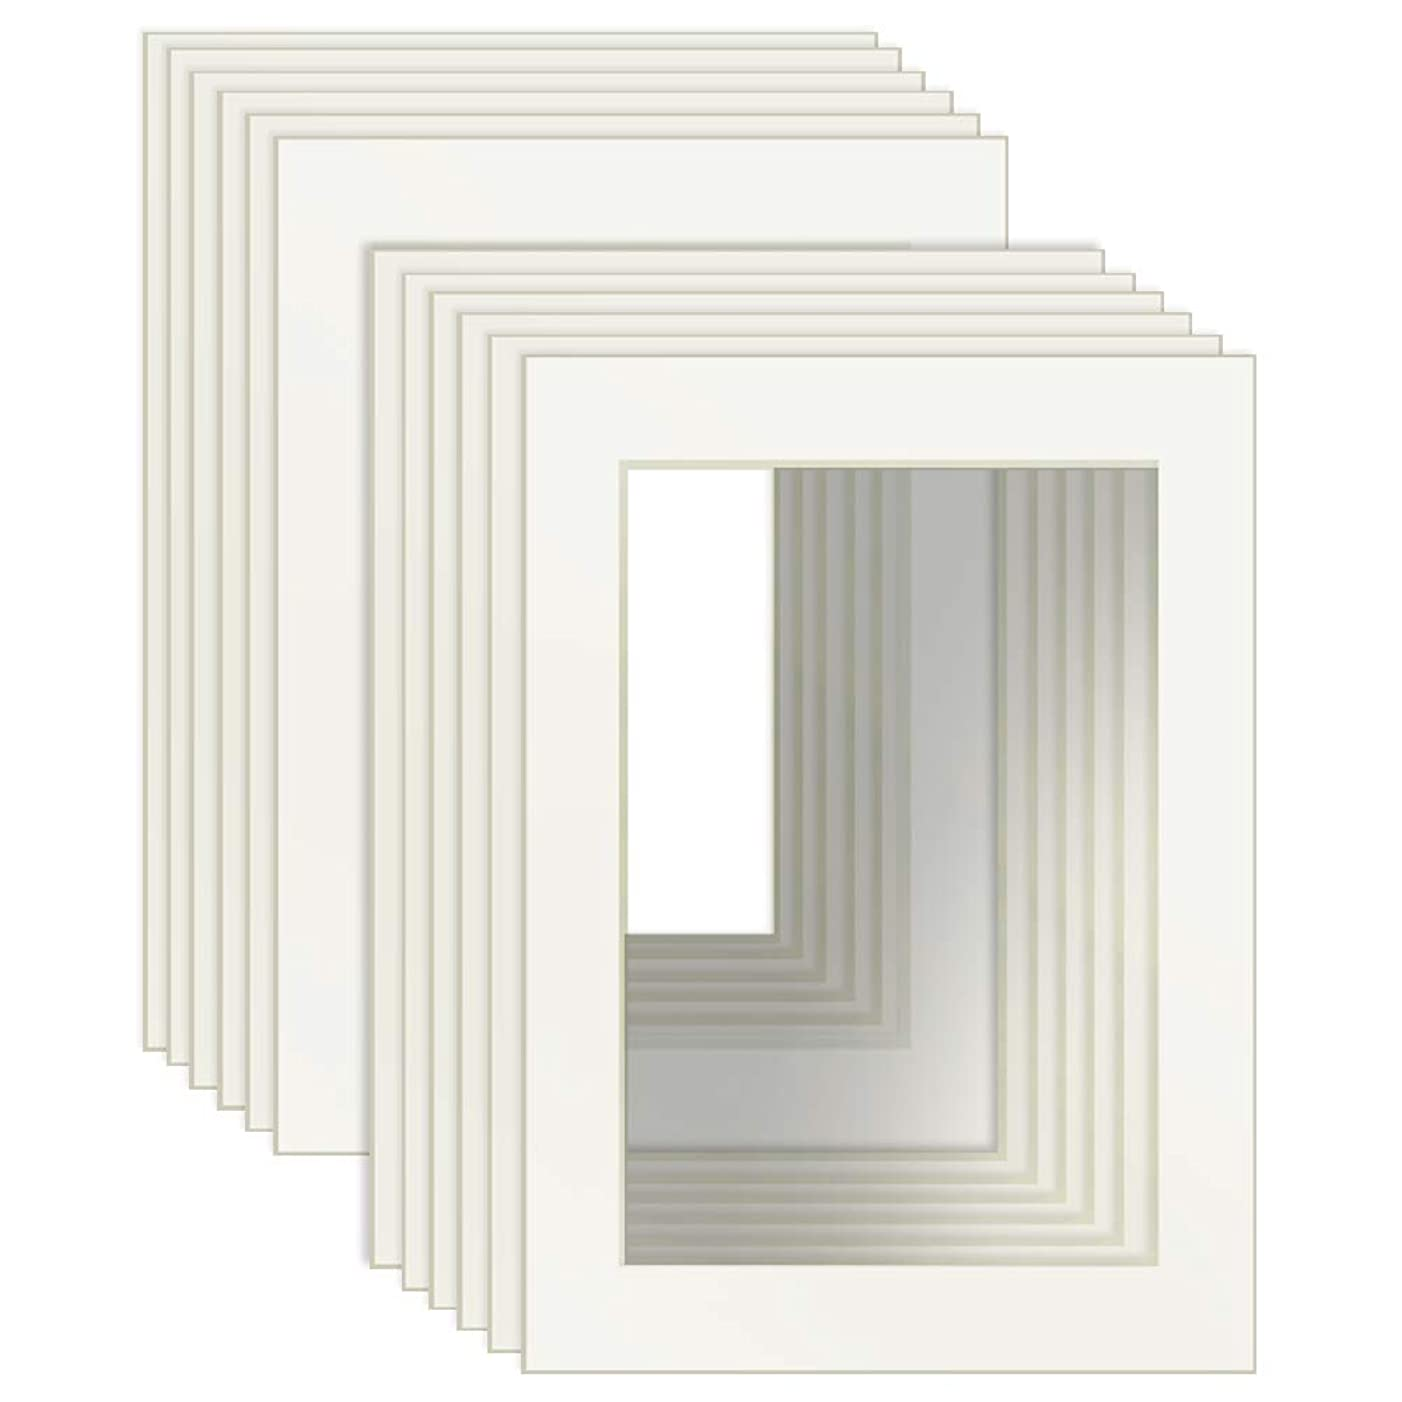 Dreamyard 5x7 White Picture Mats with Core Bevel Cut Frame Mattes for 4x6 Pictures- Pack of 12